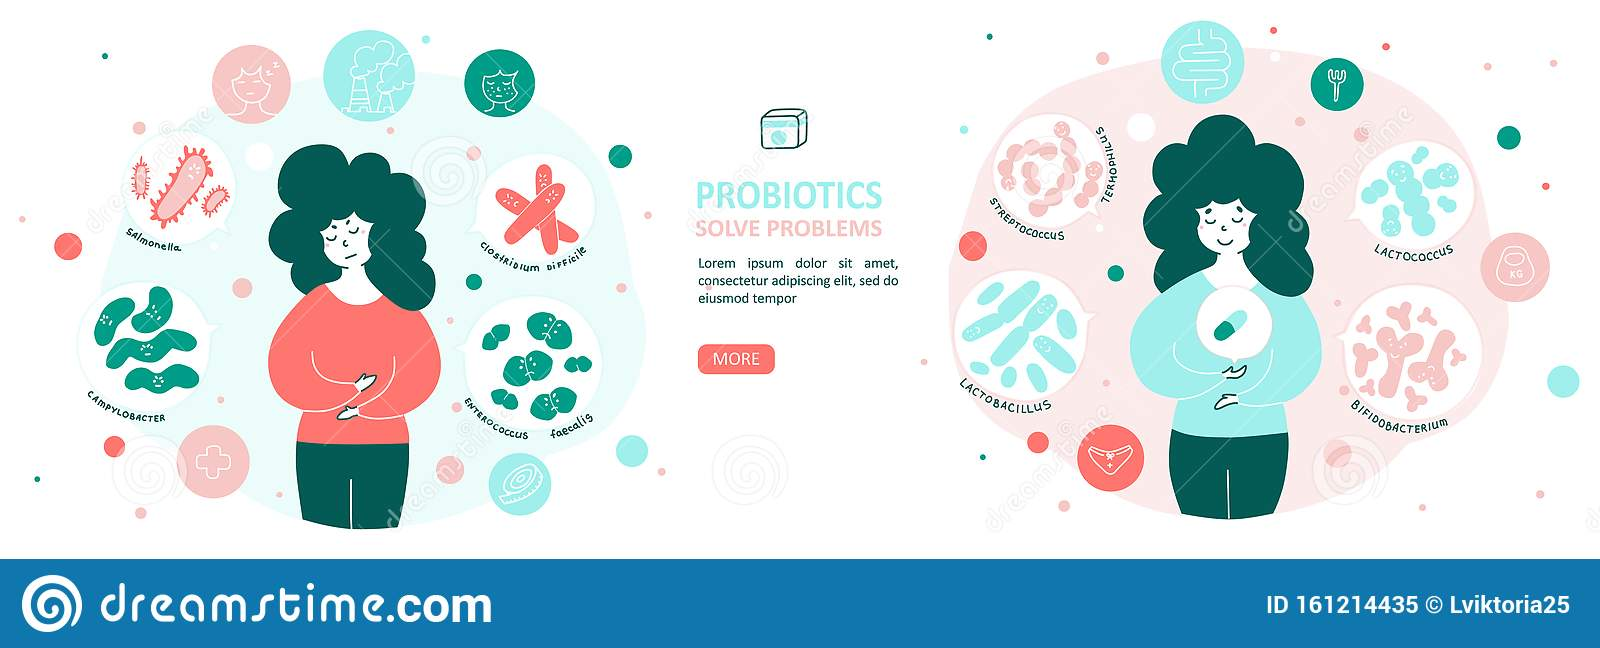 what are the benefits of probiotics